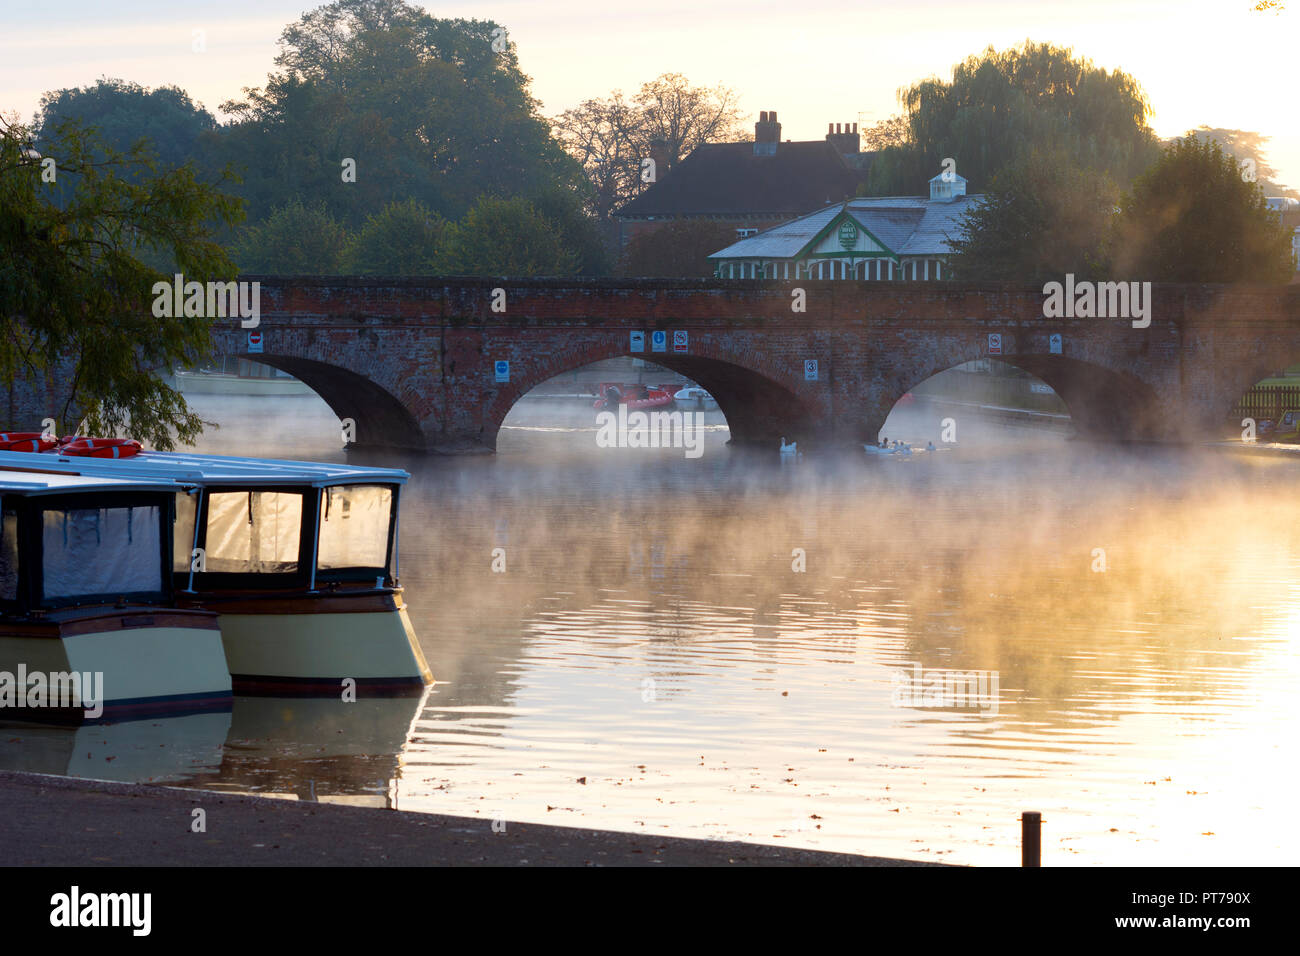 Stratford-upon-Avon, UK. 7th October 2018. Stratford-upon-Avon, Warwickshire, England, UK. On a frosty morning the sun rises over the River Avon in Stratford-upon-Avon. Credit: Colin Underhill/Alamy Live News - Stock Image